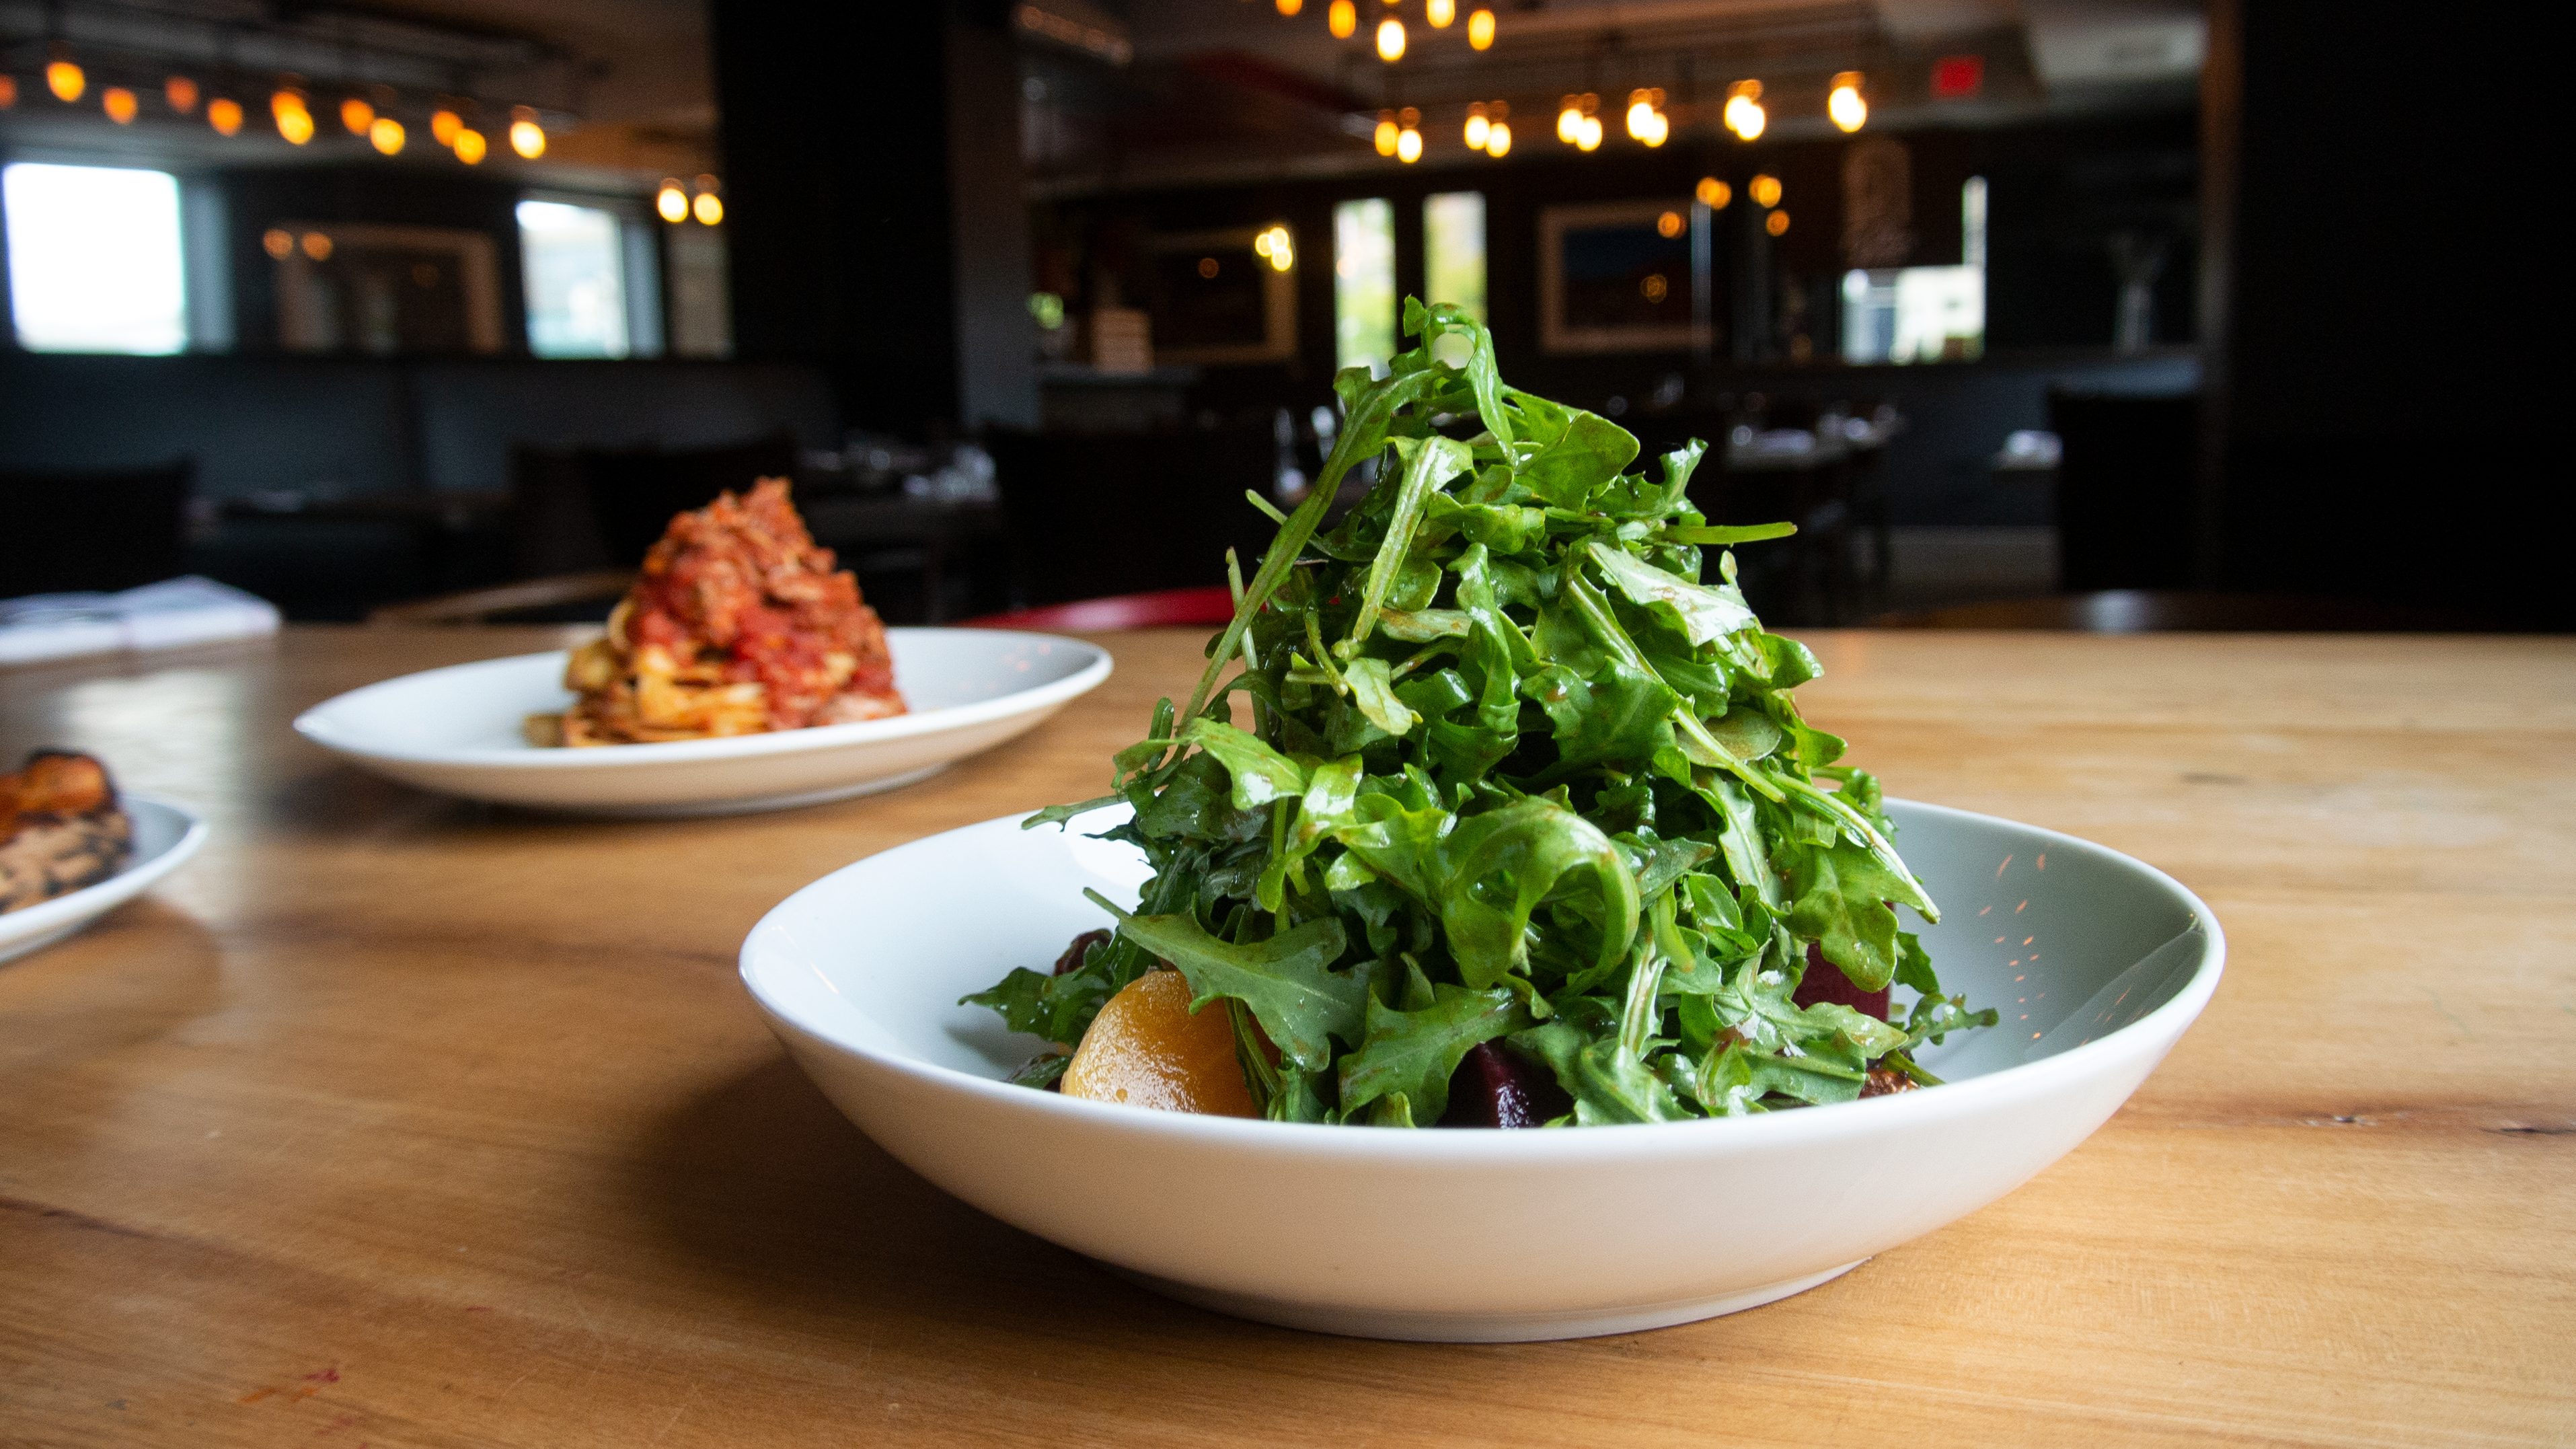 The beet and arugula salad.